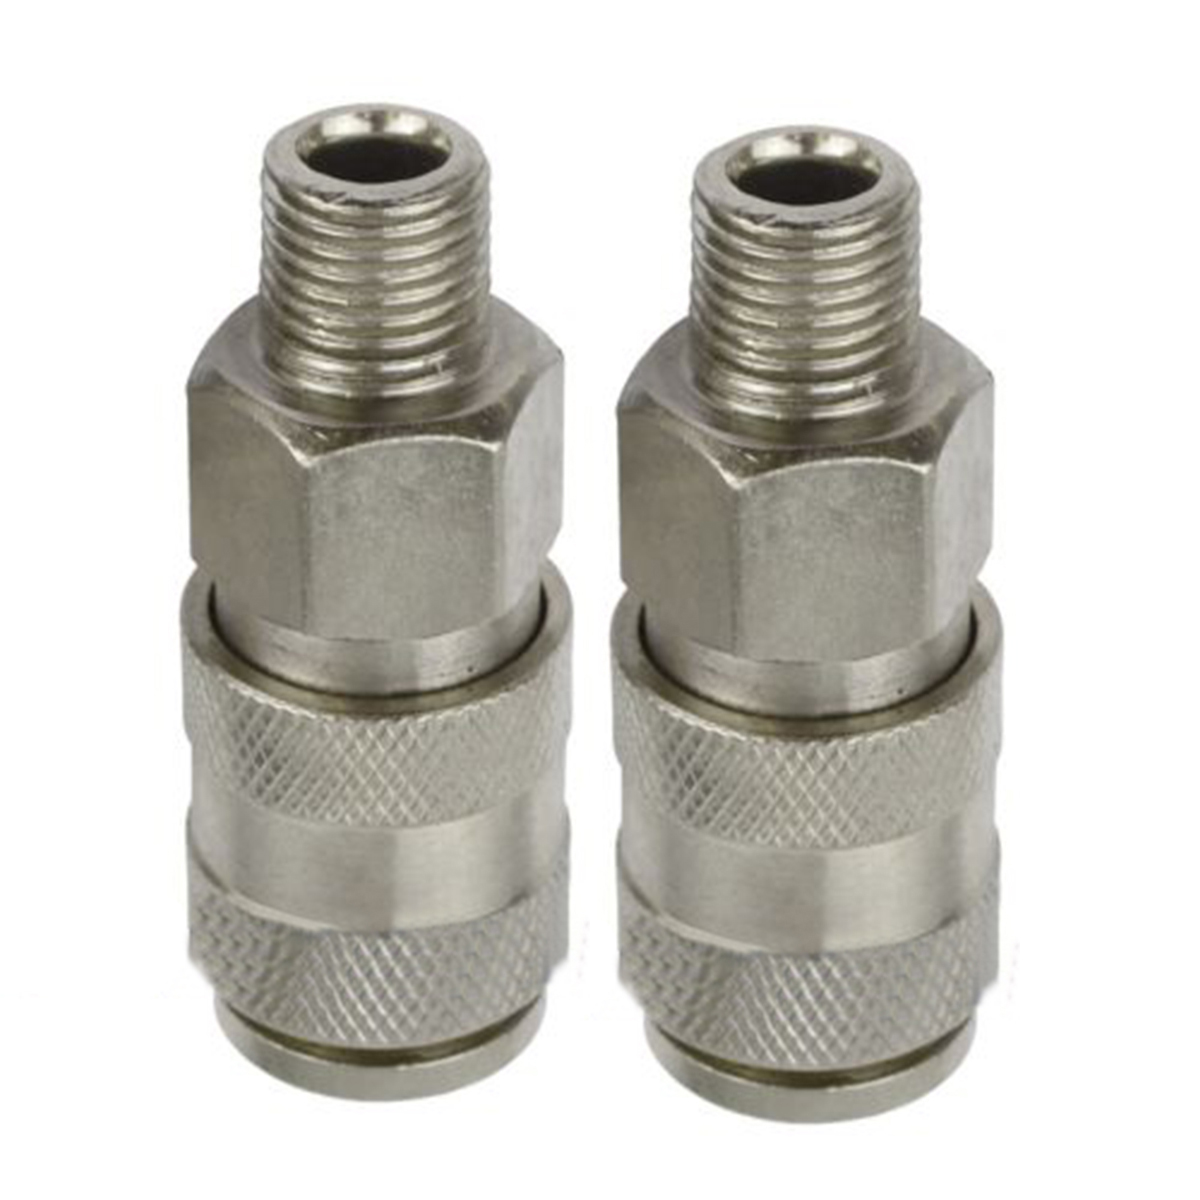 2pcs Air Line Hose Connector Euro Female Quick Release Fitting with 1/4 BSP Male Thread Mayitr For Home Tool Accessories акашев ю история народа рос от ариев до варягов